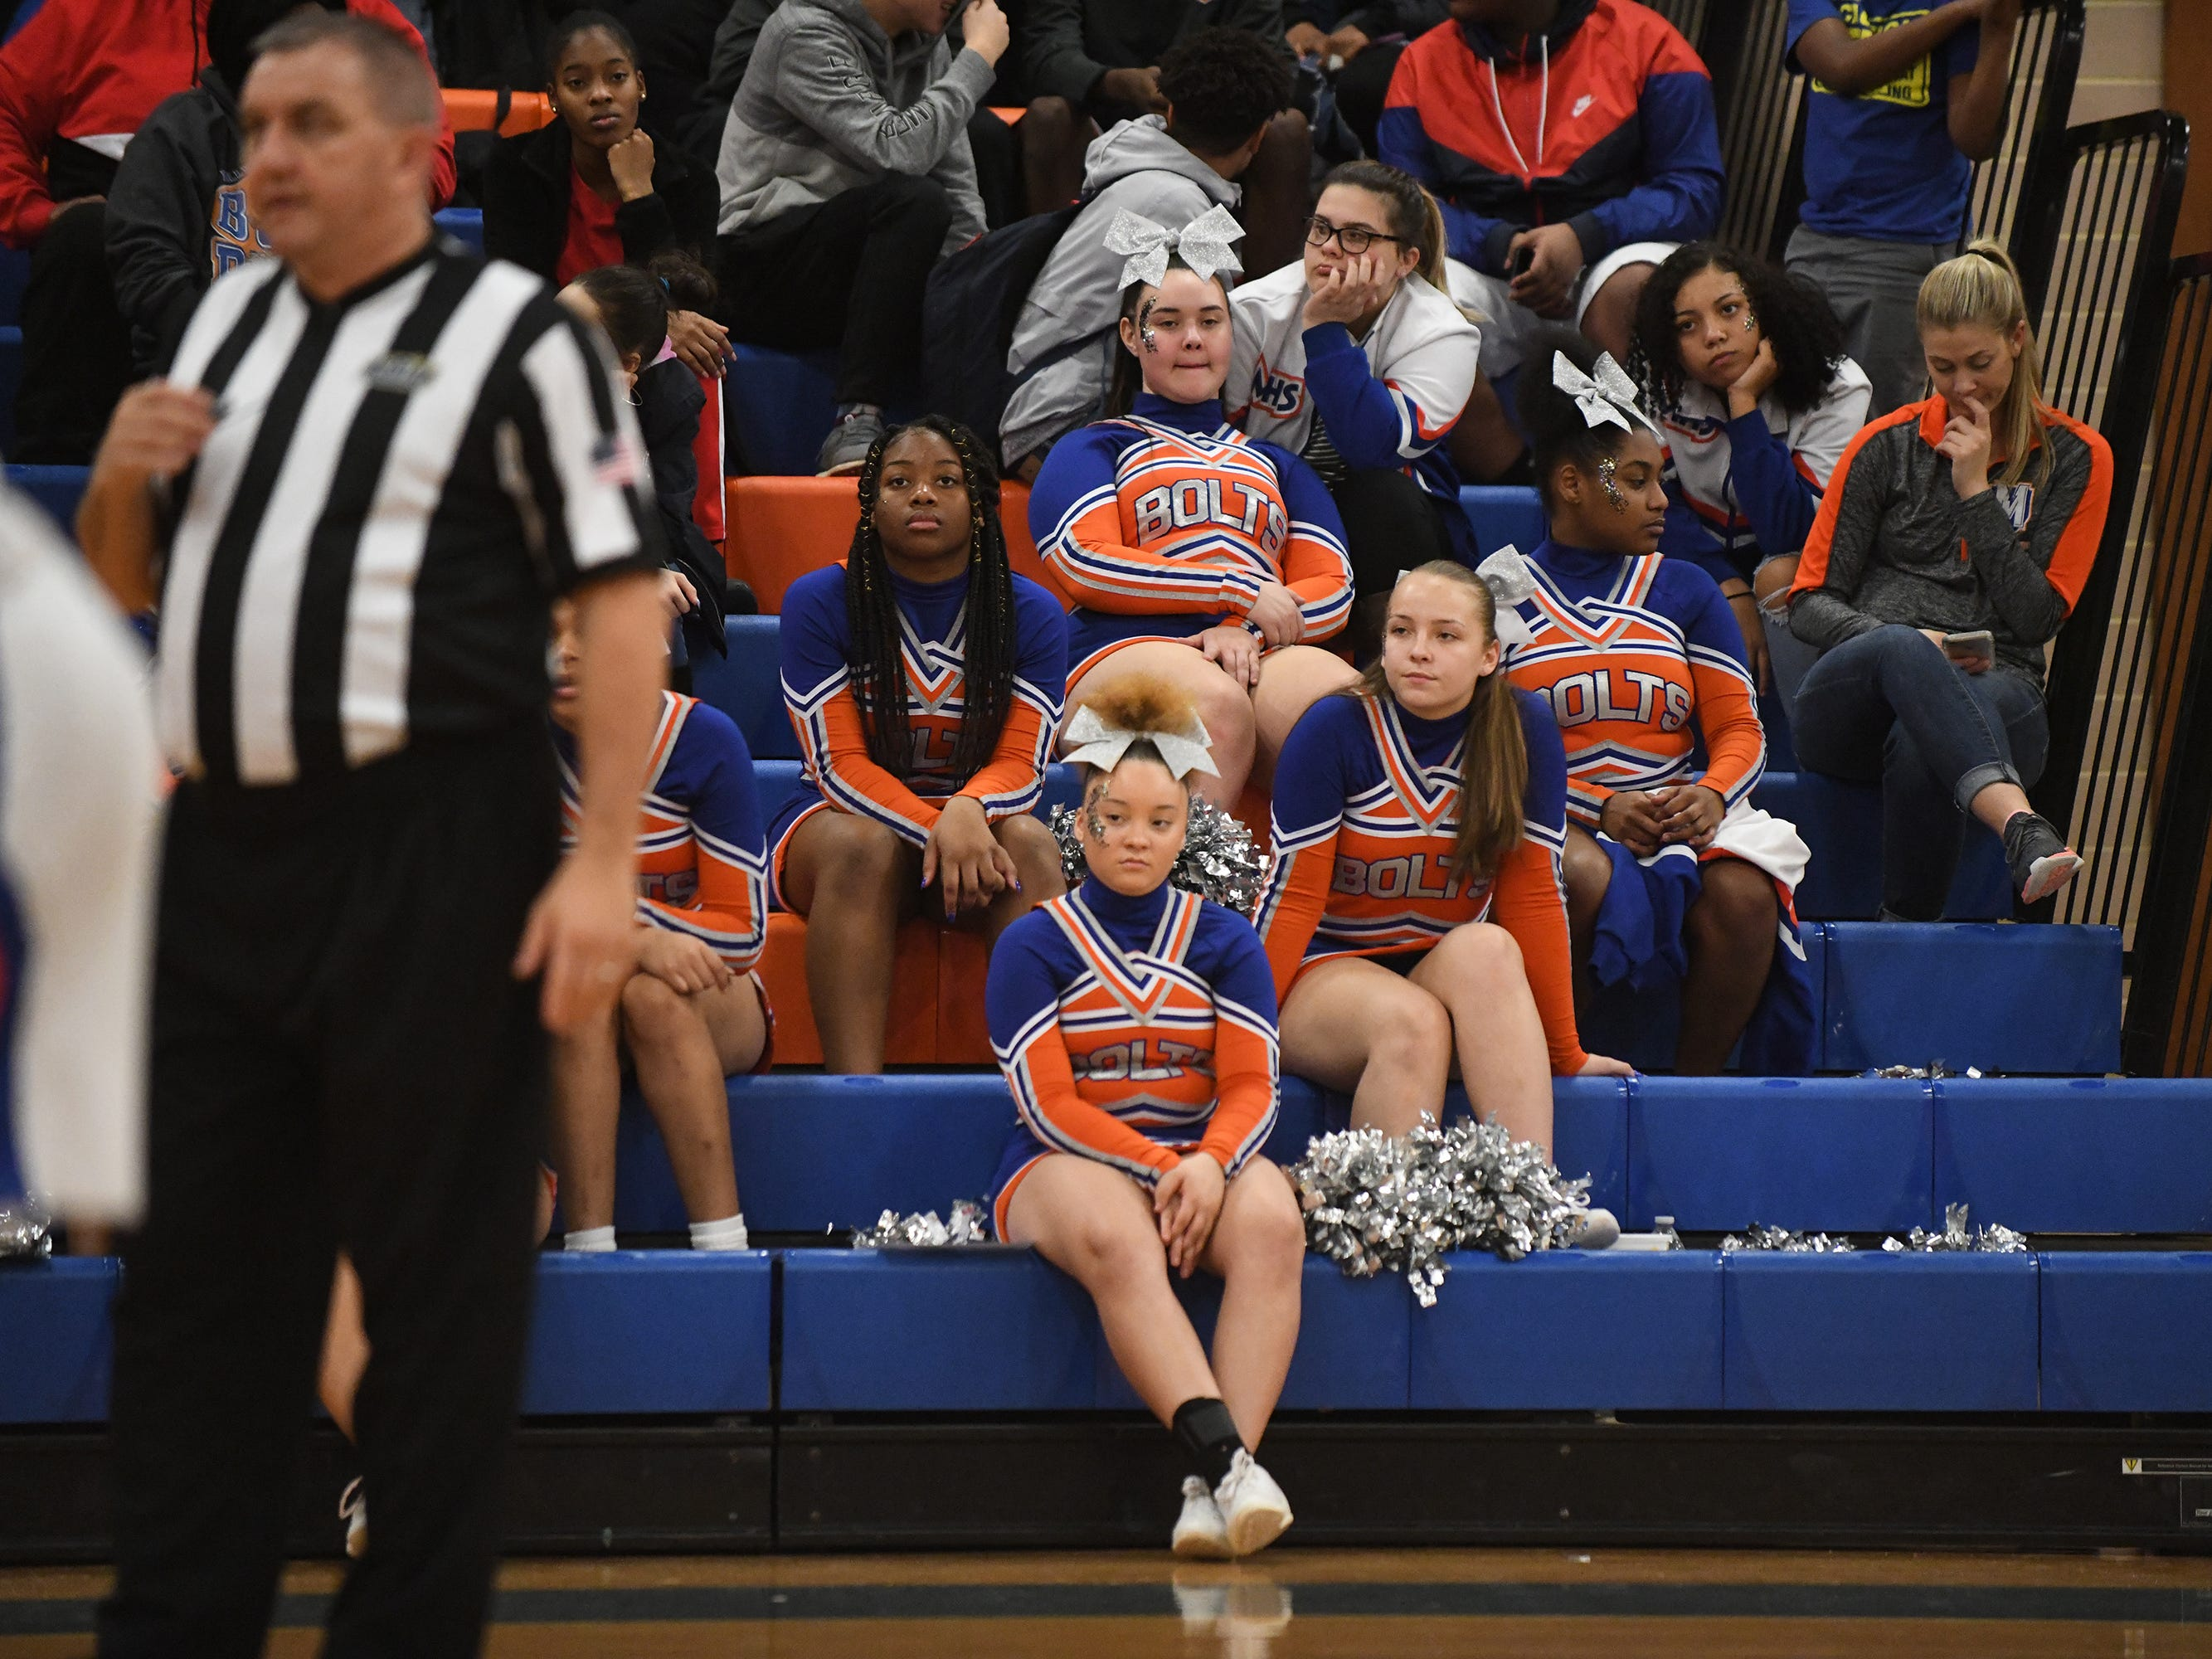 Millville cheerleaders watch a game against visiting St. Augustine. The Hermits topped the Thunderbolts 66-53 on Friday, Jan. 18, 2019.